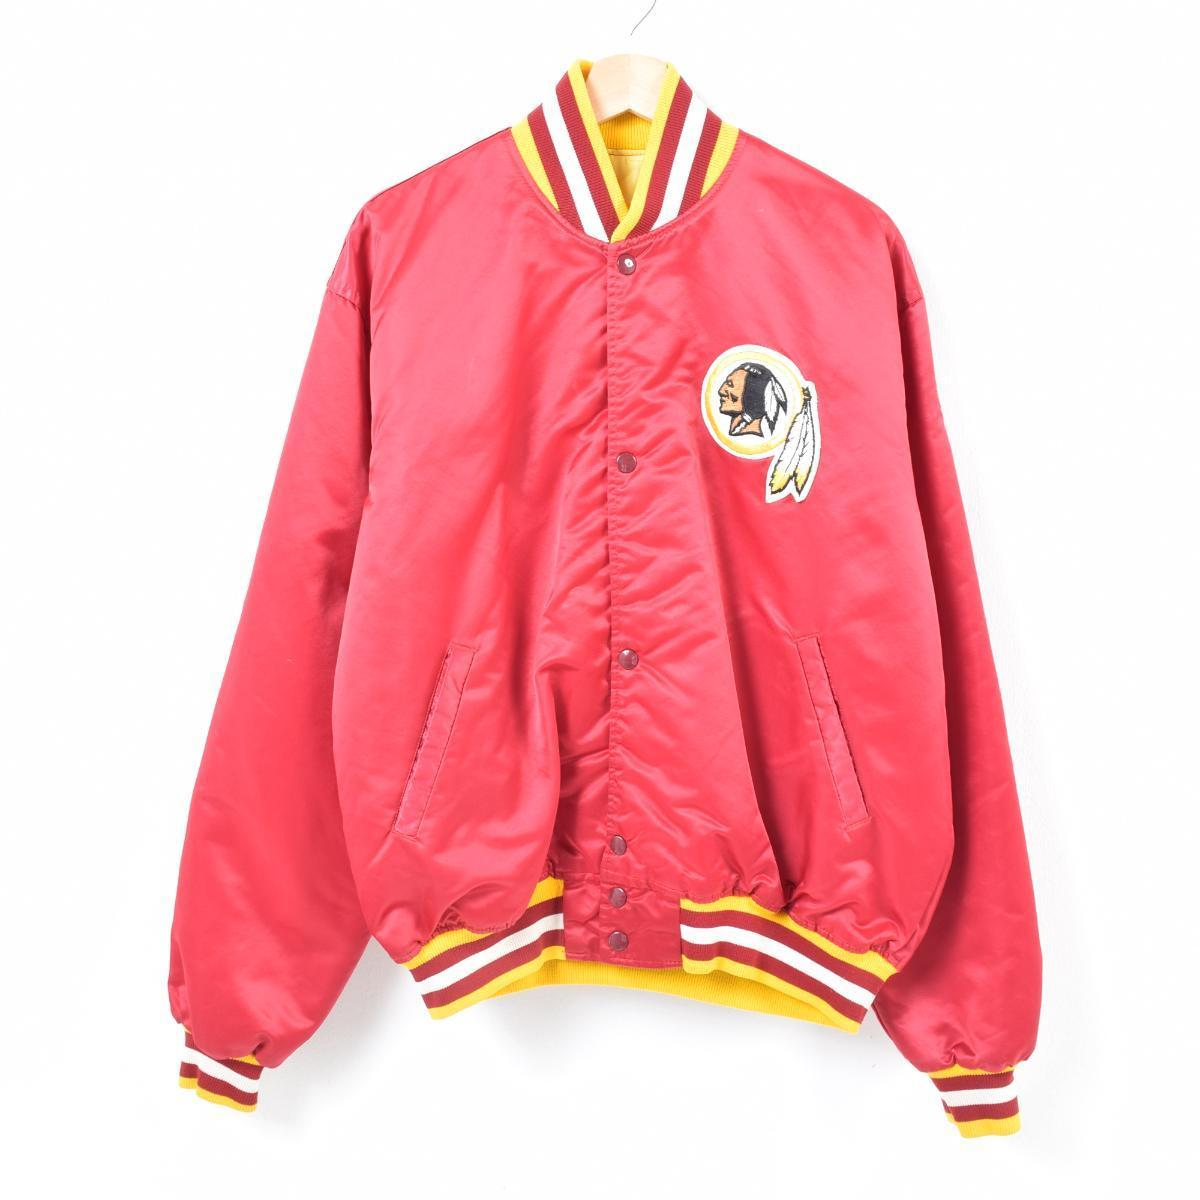 finest selection d7f8d 0e0c0 Men XL /war7338 made in starter Starter NFL WASHINGTON REDSKINS Washington  Redskins nylon award jacket Award jacket USA